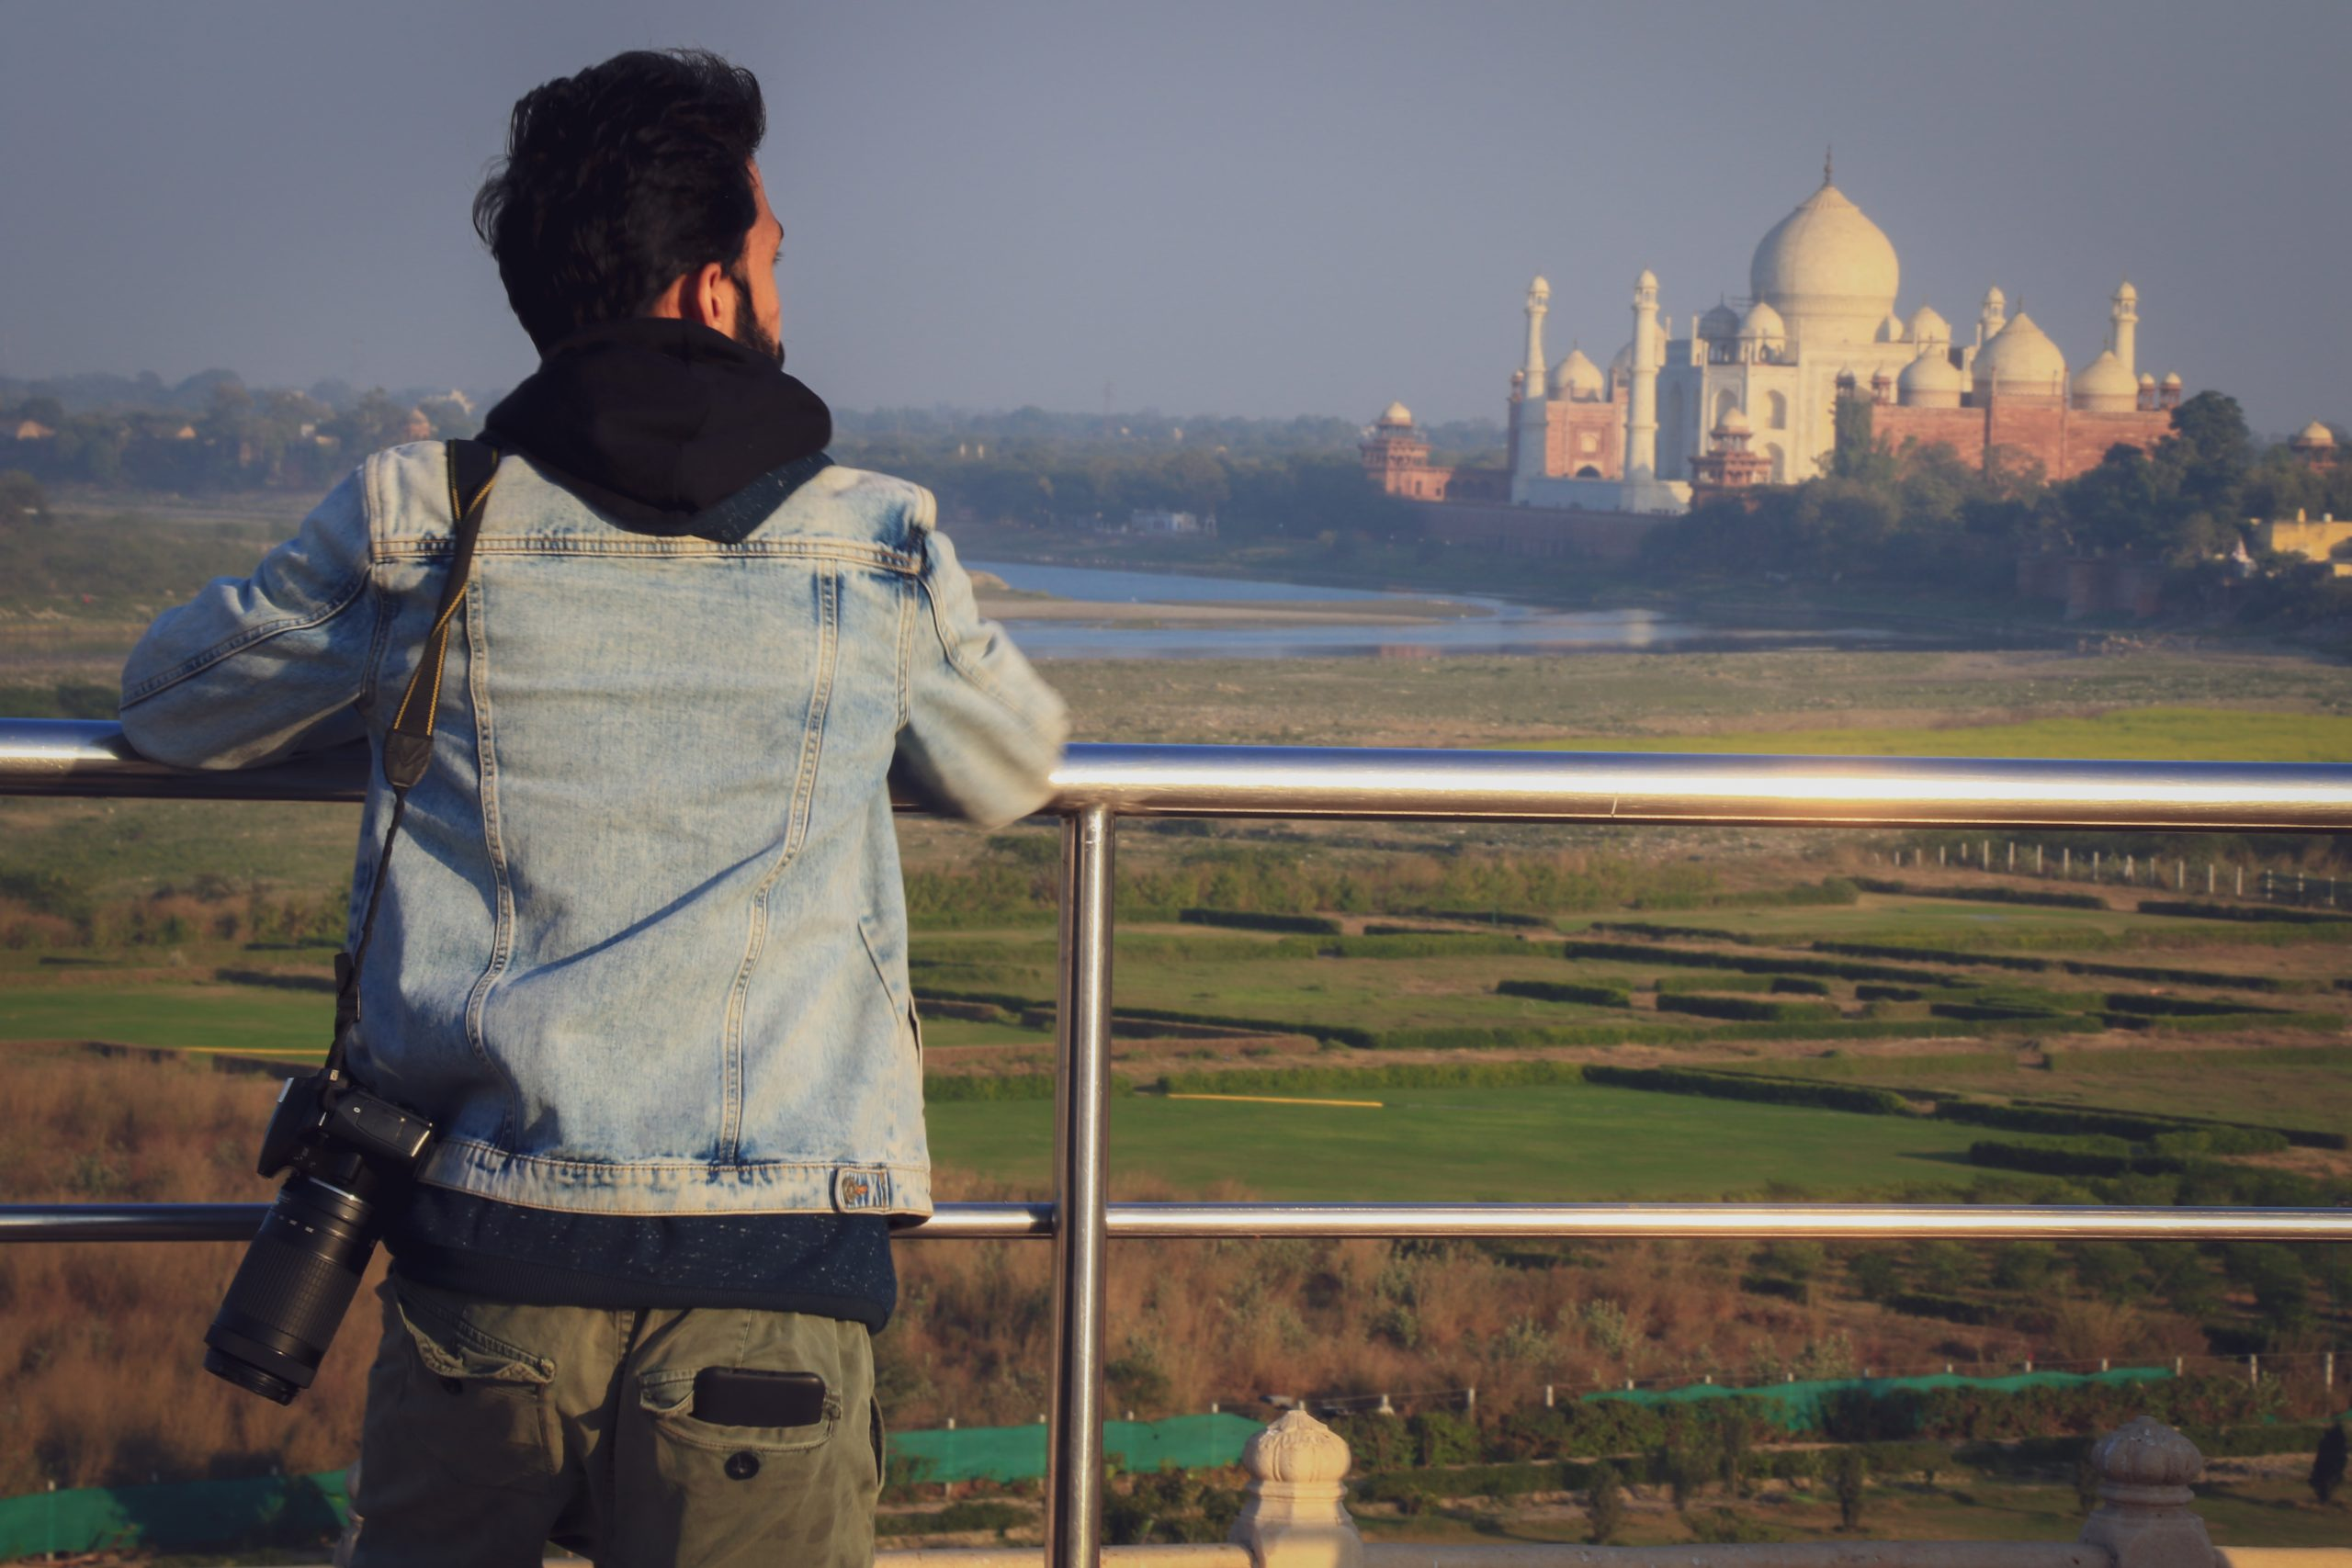 A photographer near Taj Mahal